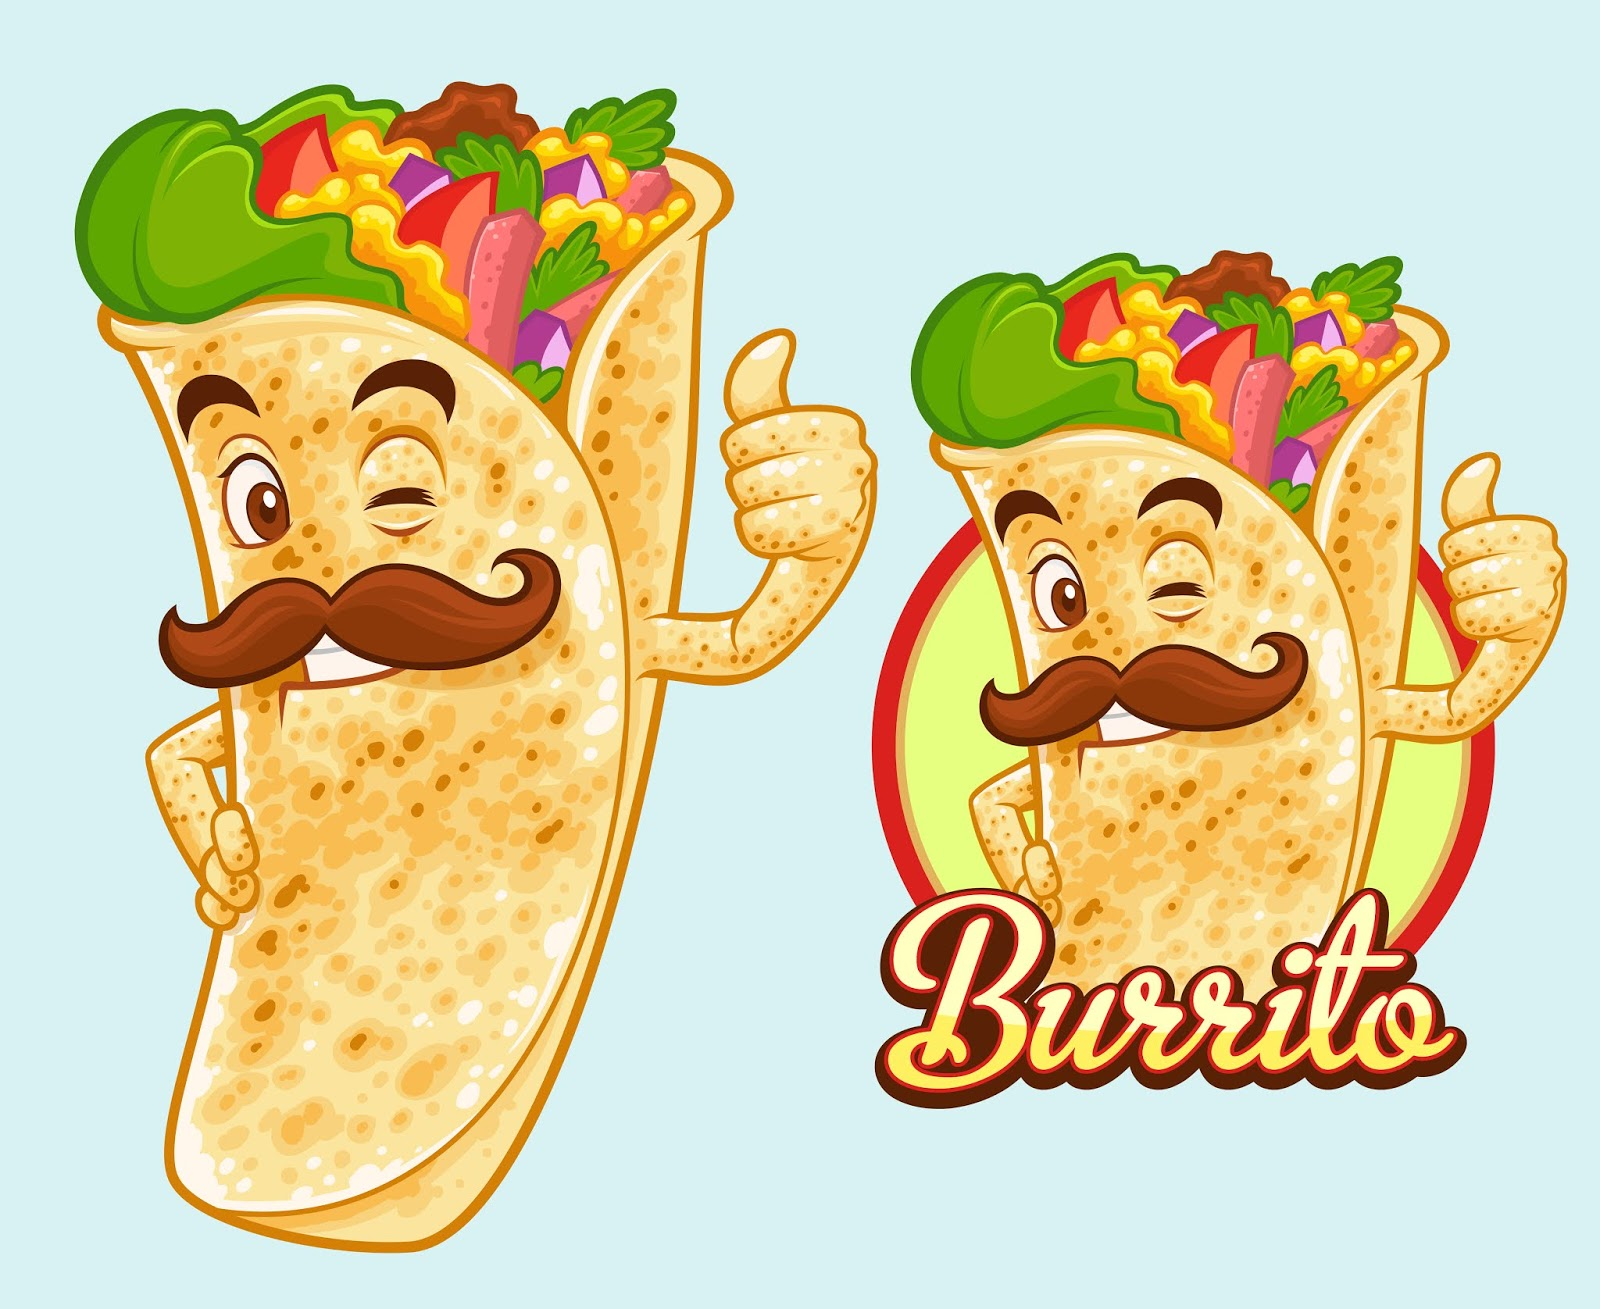 Burrito Mascot Design.jpg Free Download Vector CDR, AI, EPS and PNG Formats